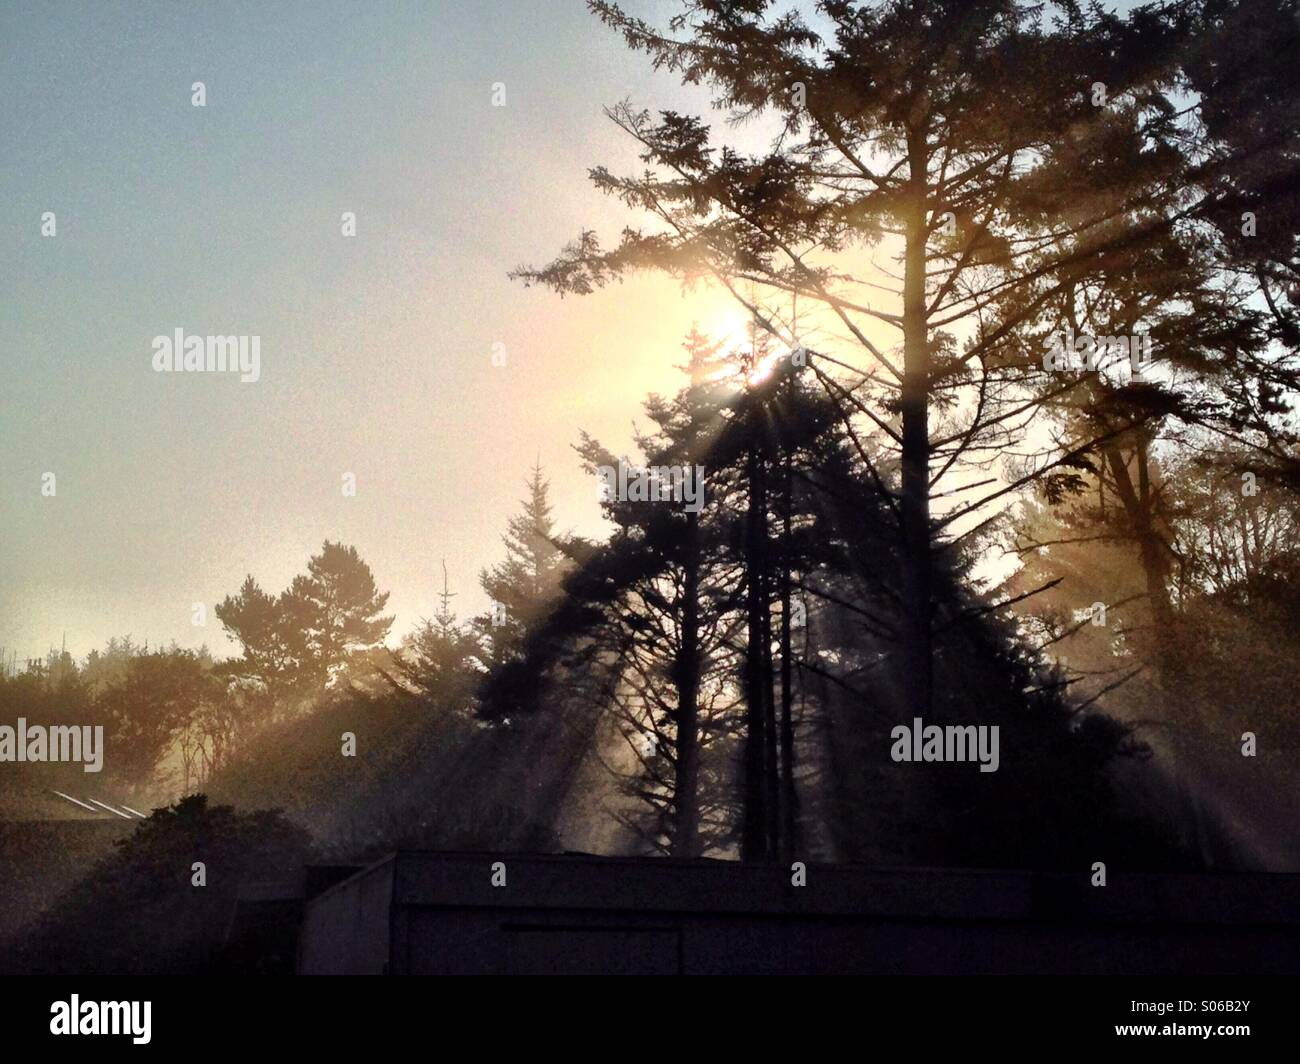 Morning light beams through the mist in the Oregon woods. - Stock Image